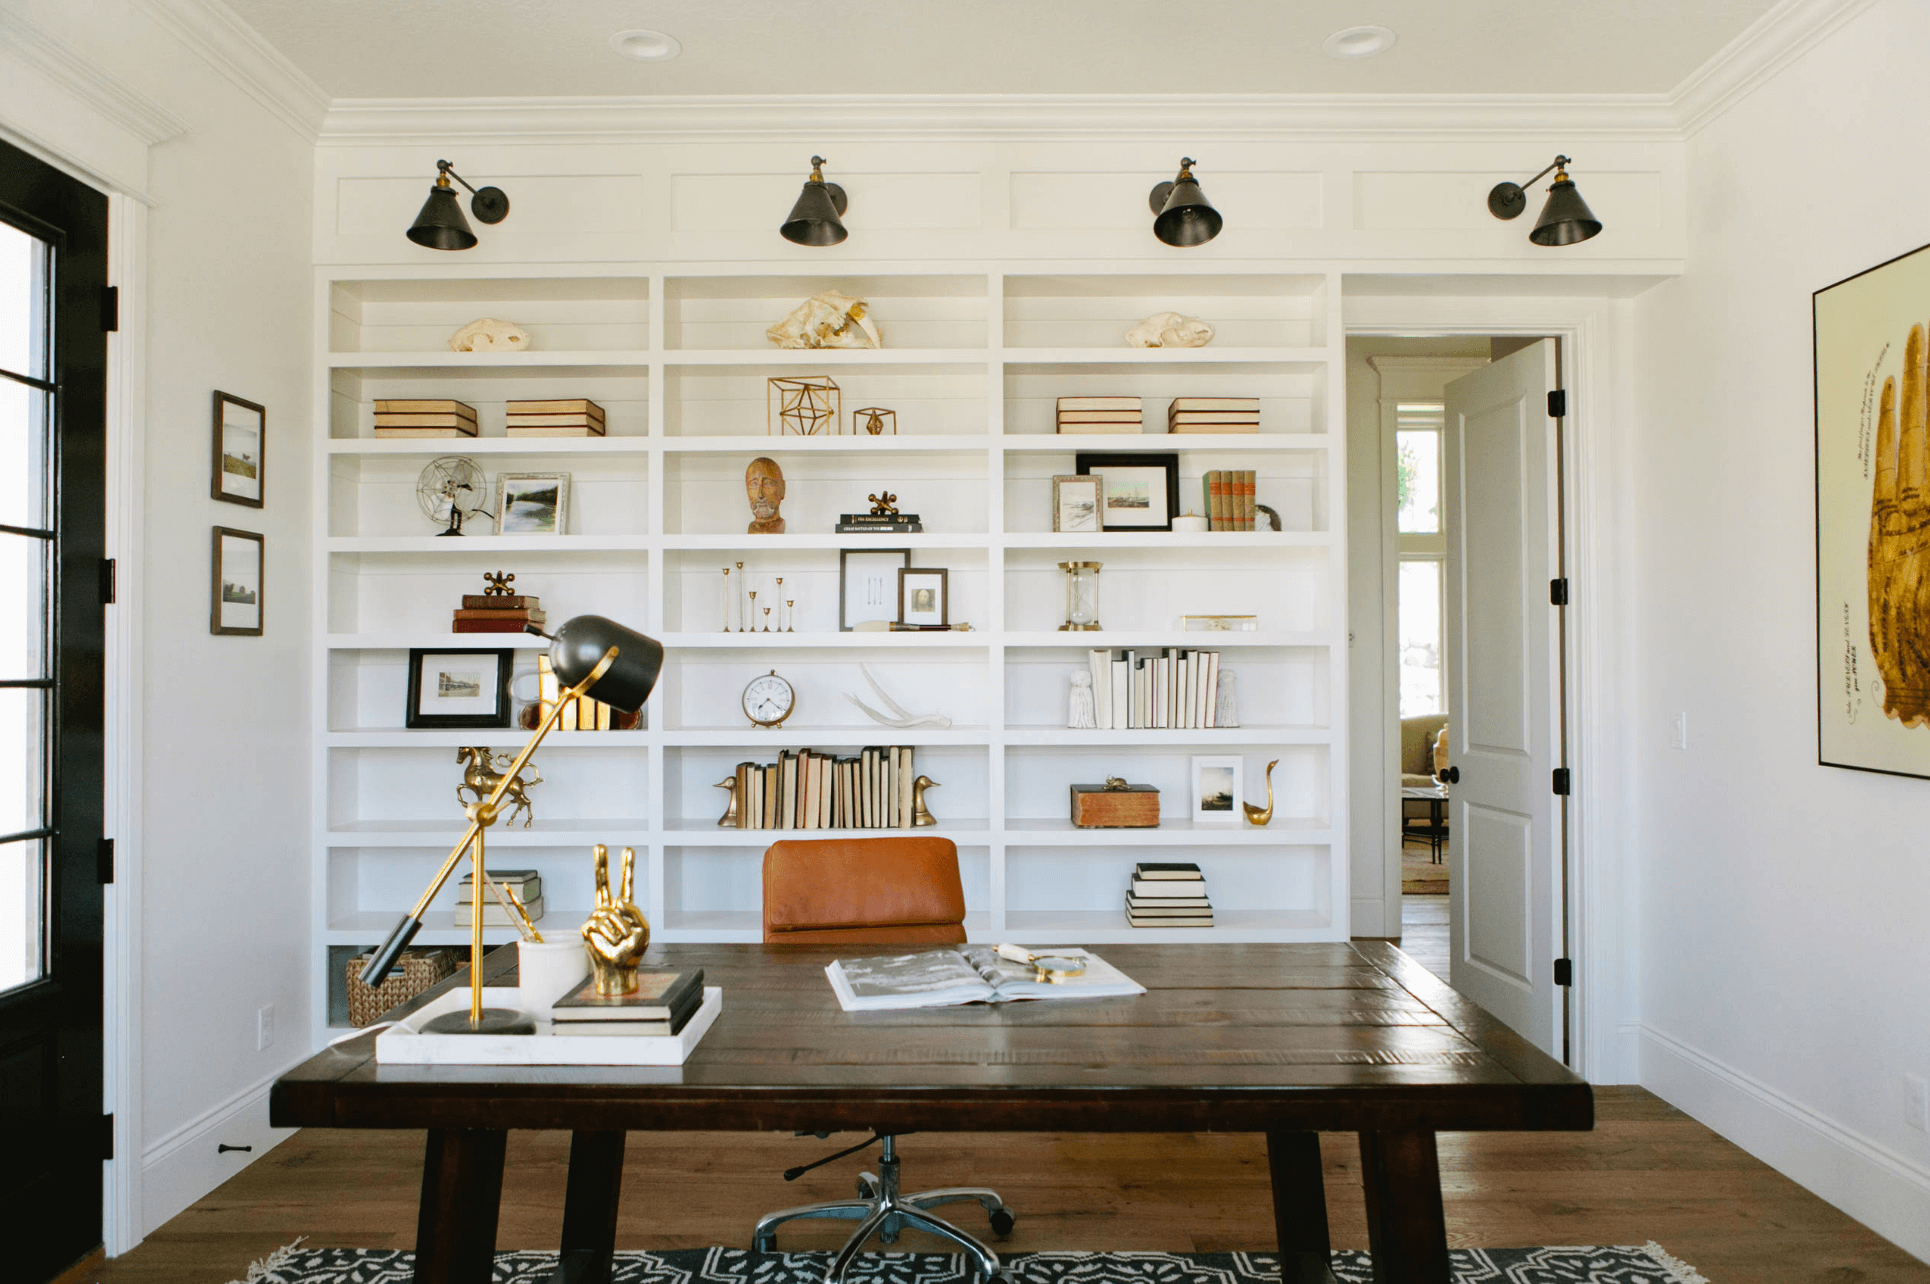 home office design ideas Home Office Design Ideas You Will Want to Use this Year 10 Home Office Design Ideas You Should Get Inspired By